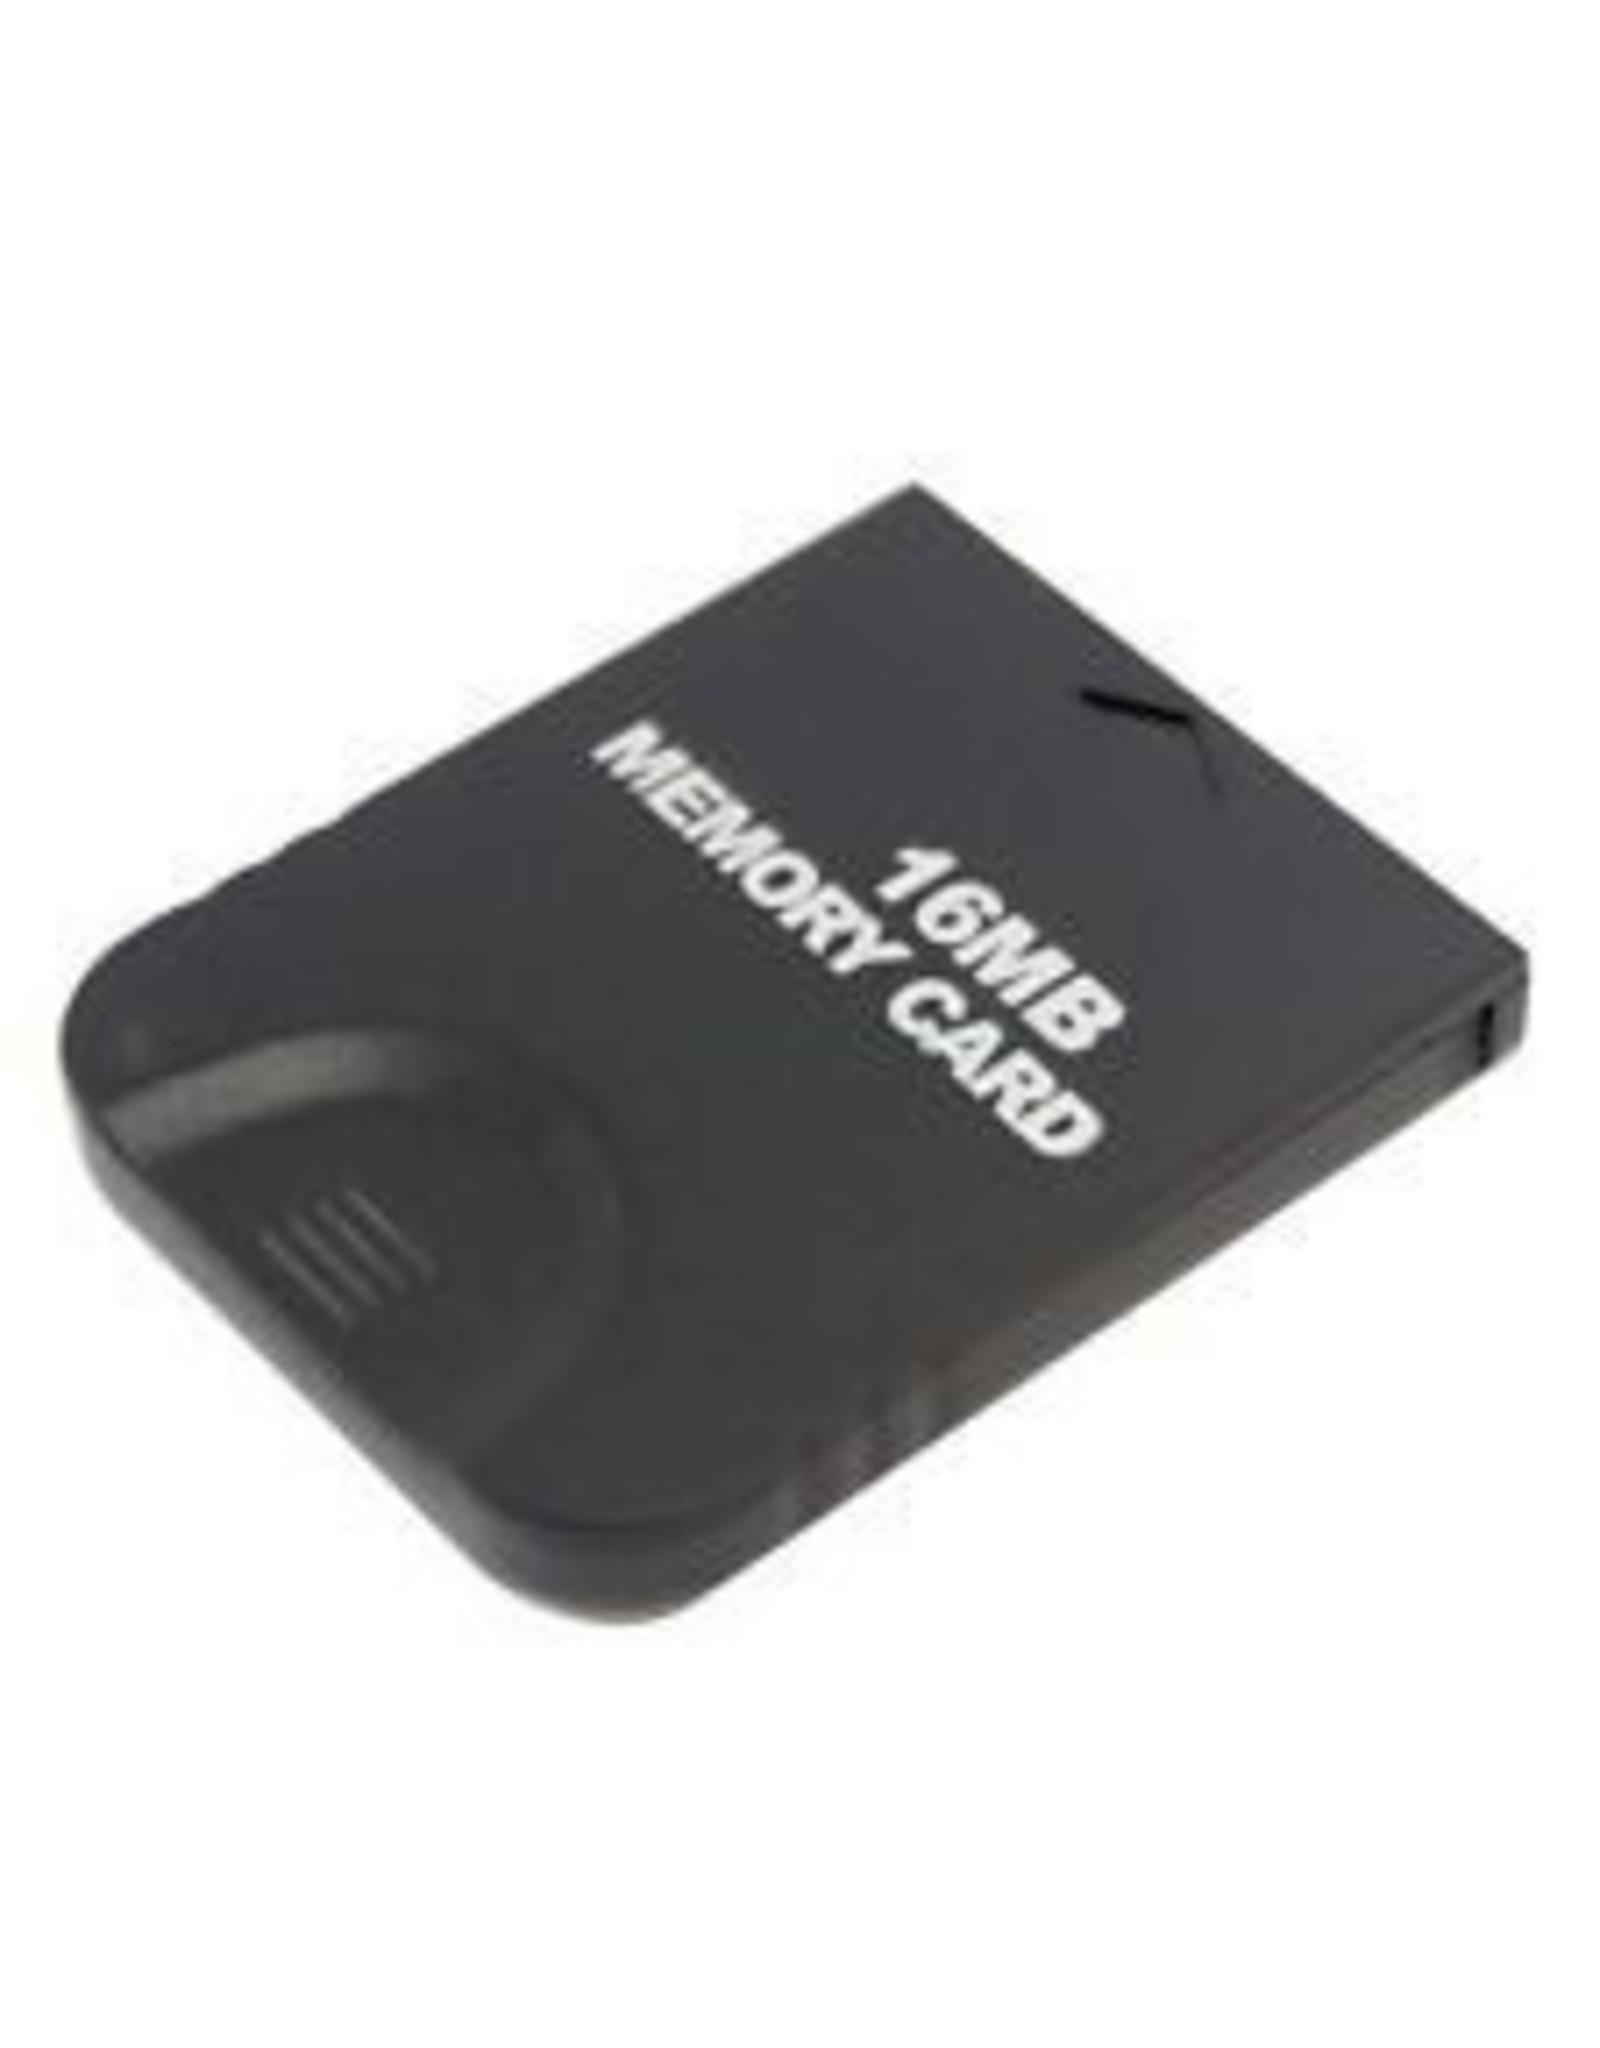 Gamecube 16MB 251 Block Memory Card 3rd Party (USED)